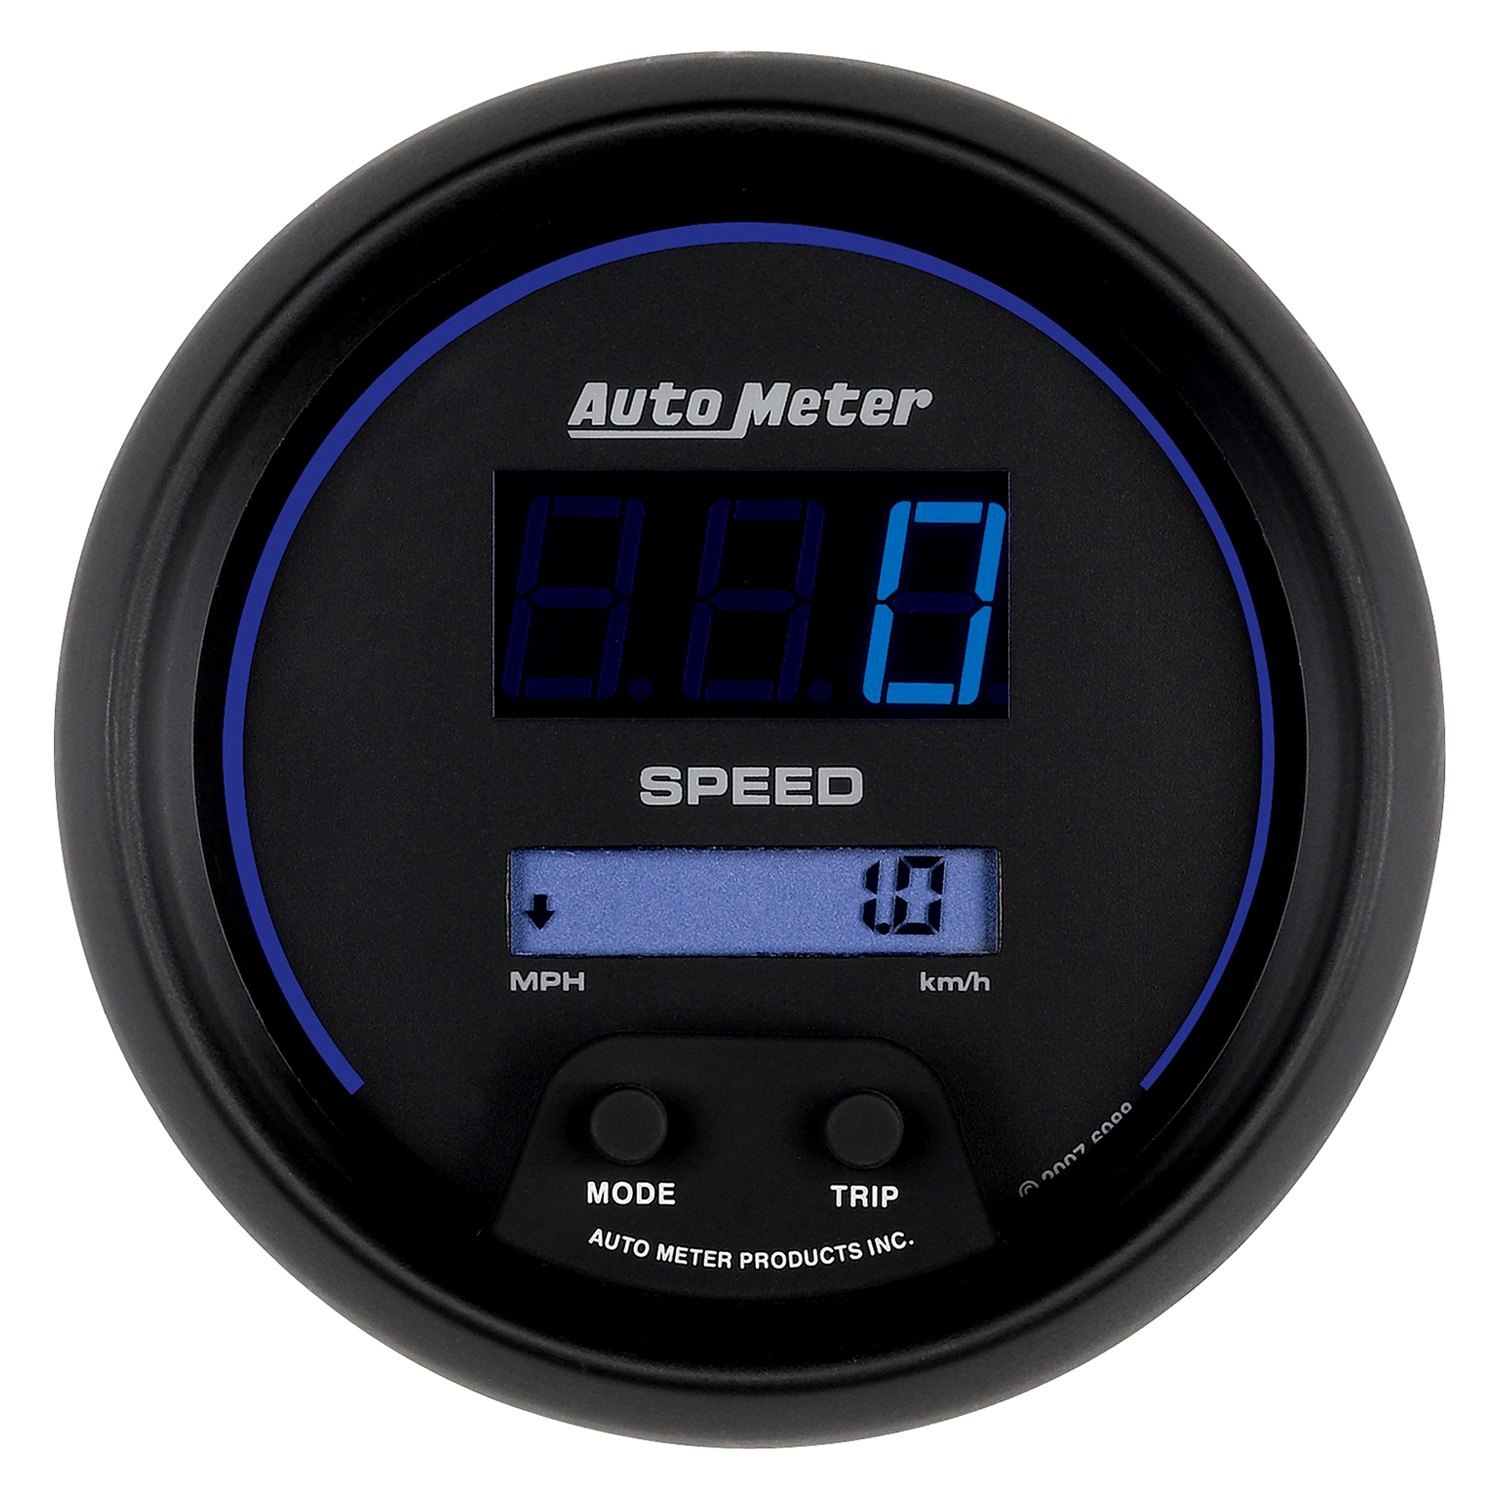 Auto Meter Electronic Speedometers : Auto meter cobalt digital™ speedometer in dash gauge